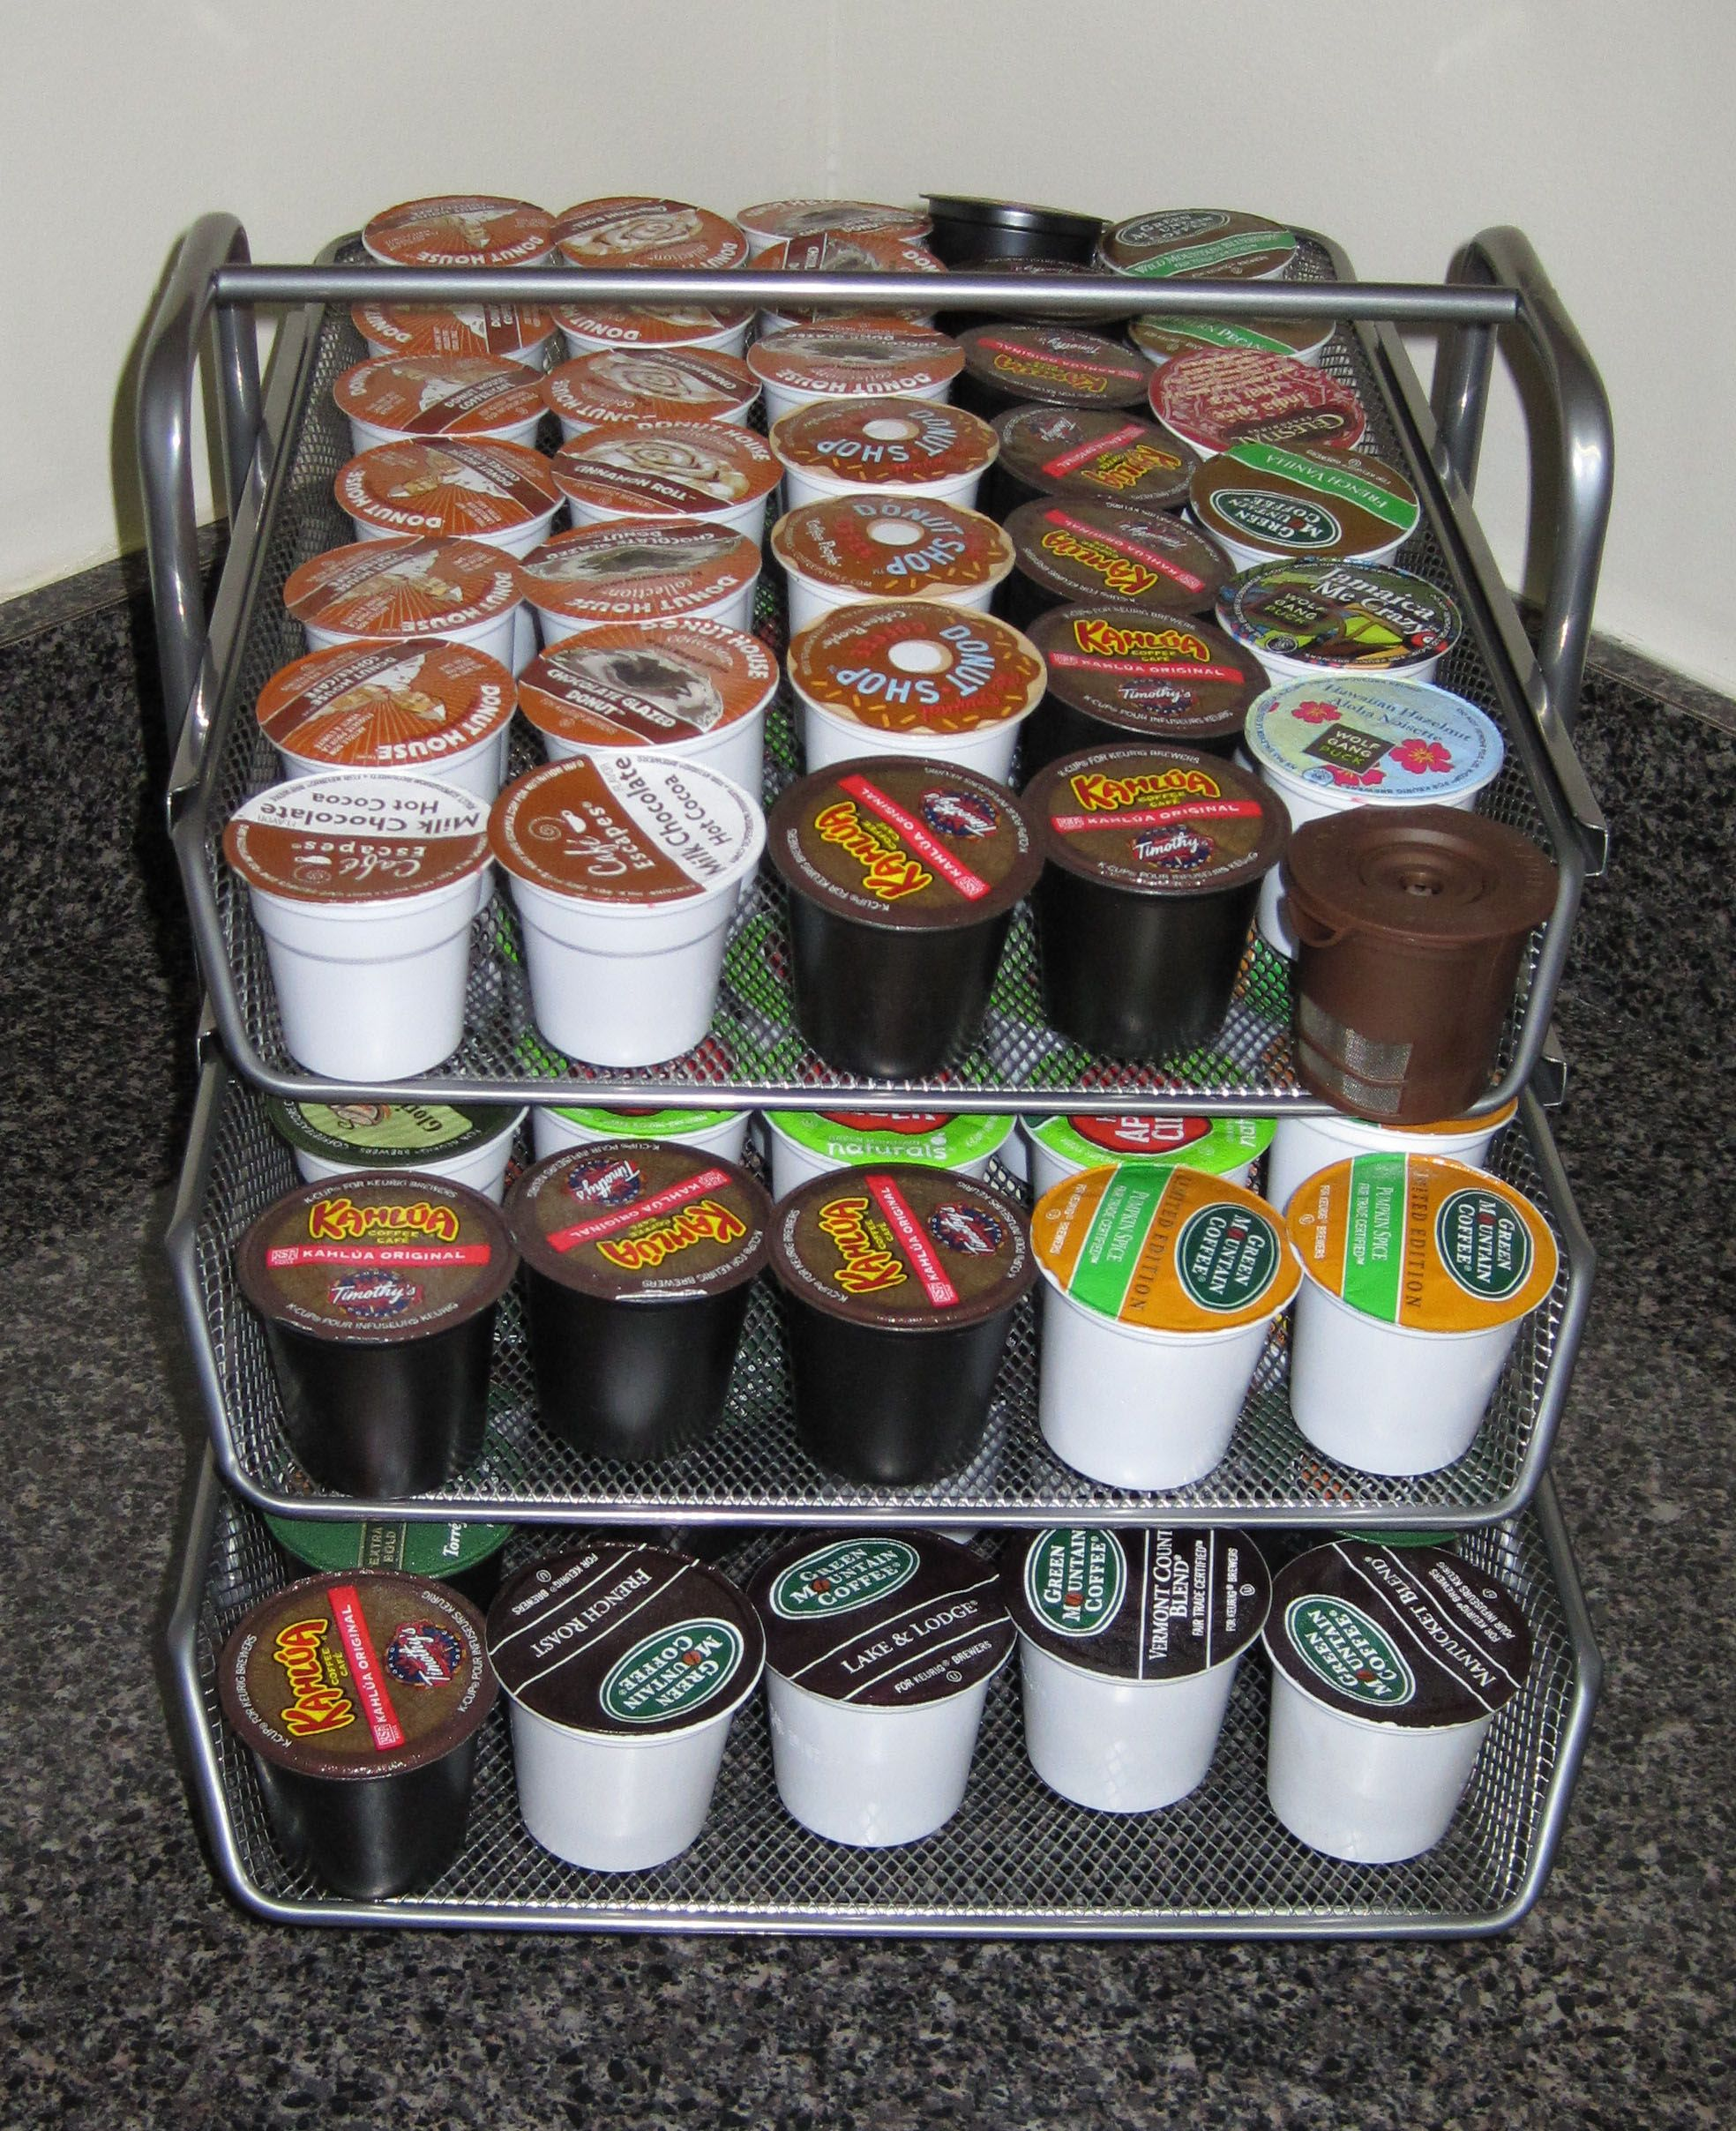 ikea file folder repurposed as a keurig k cup organizer holder much cheaper that the k cup. Black Bedroom Furniture Sets. Home Design Ideas